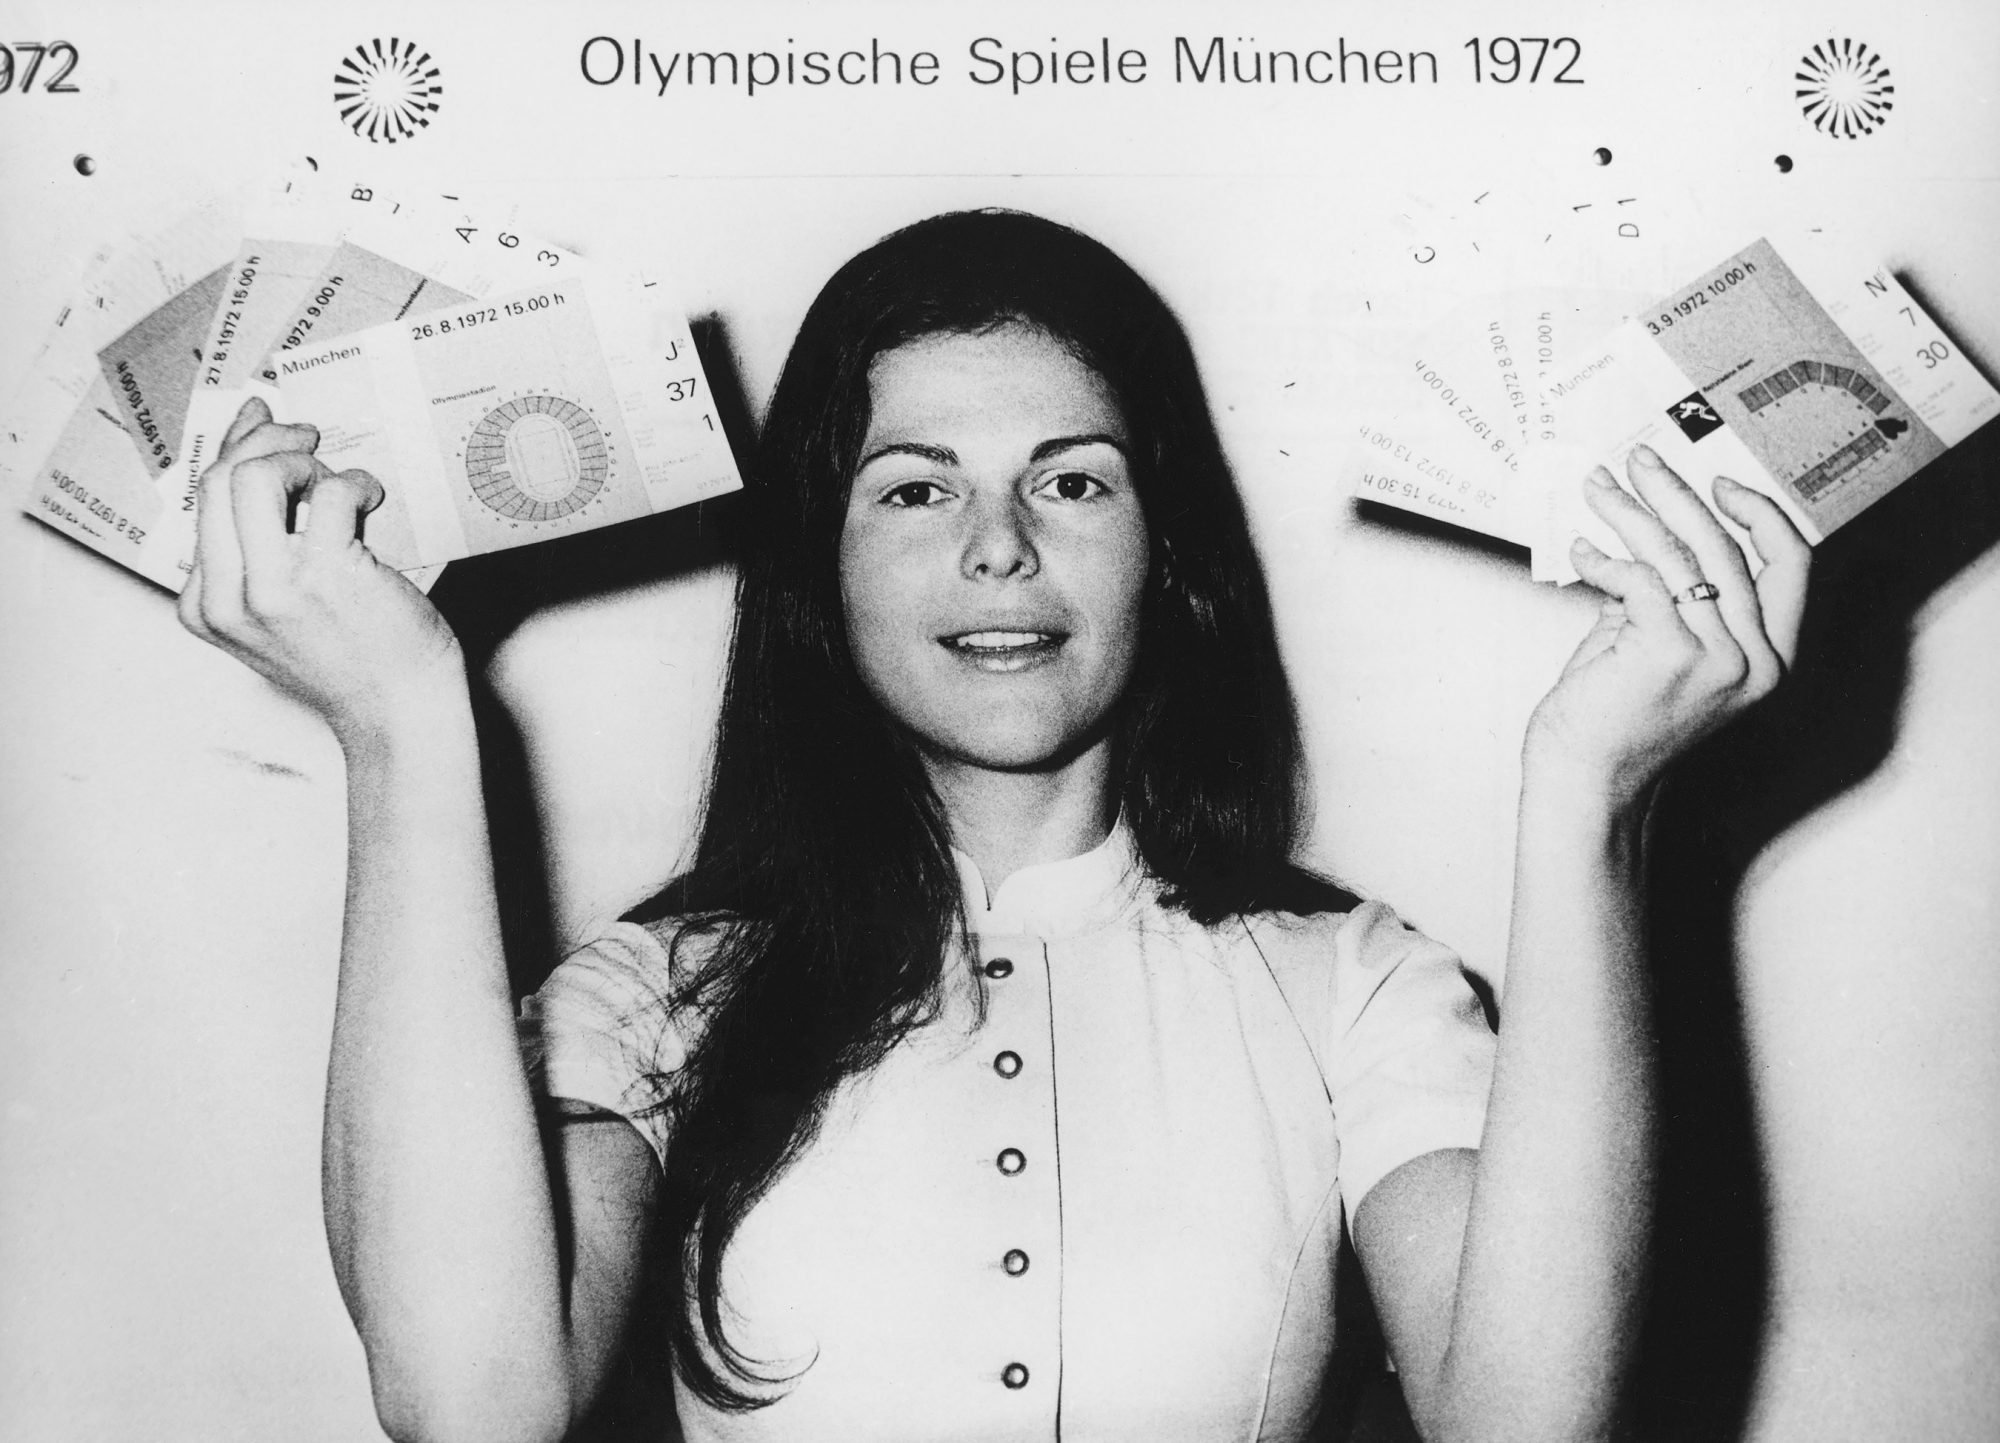 Silvia Sommerlath, Hostess On The Olympic Games Of Munich In 1972